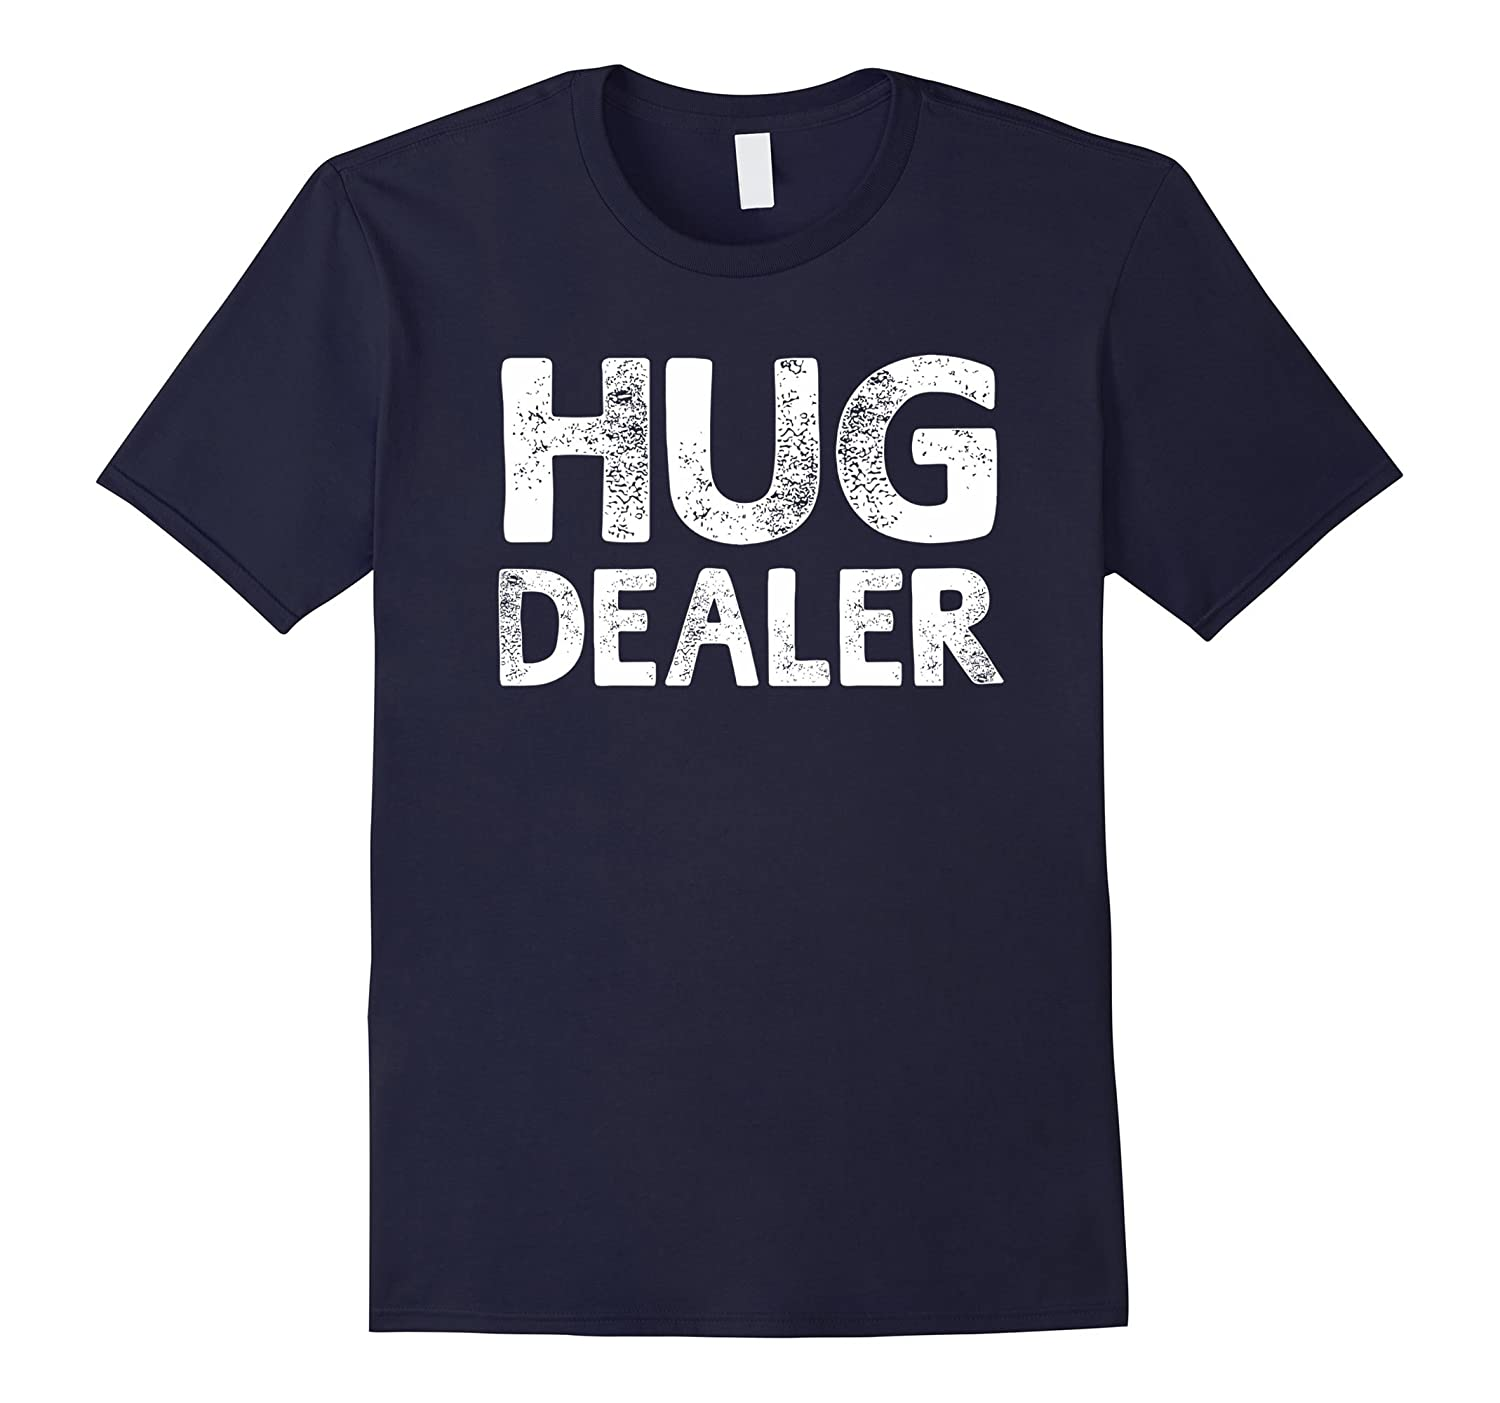 Hug Dealer Huger Funny Sayings T-shirt For Men Women-CD